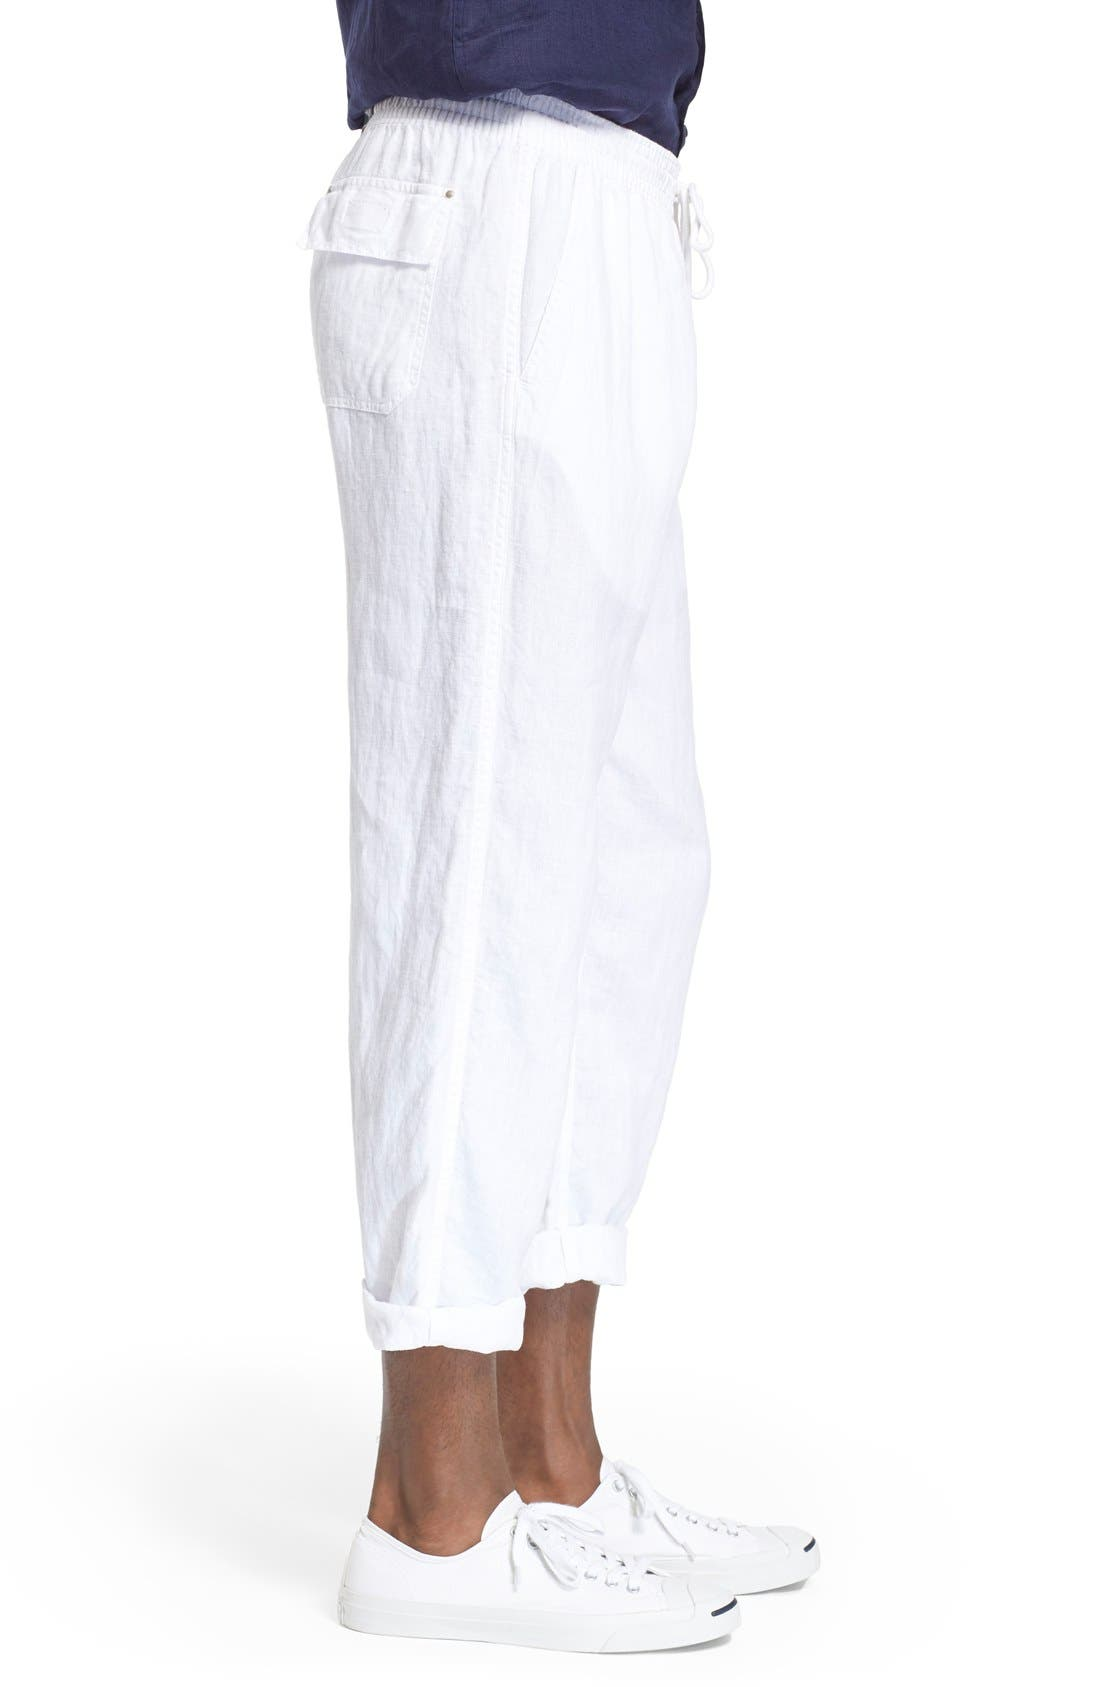 'Pacha' Linen Pants,                             Alternate thumbnail 3, color,                             100